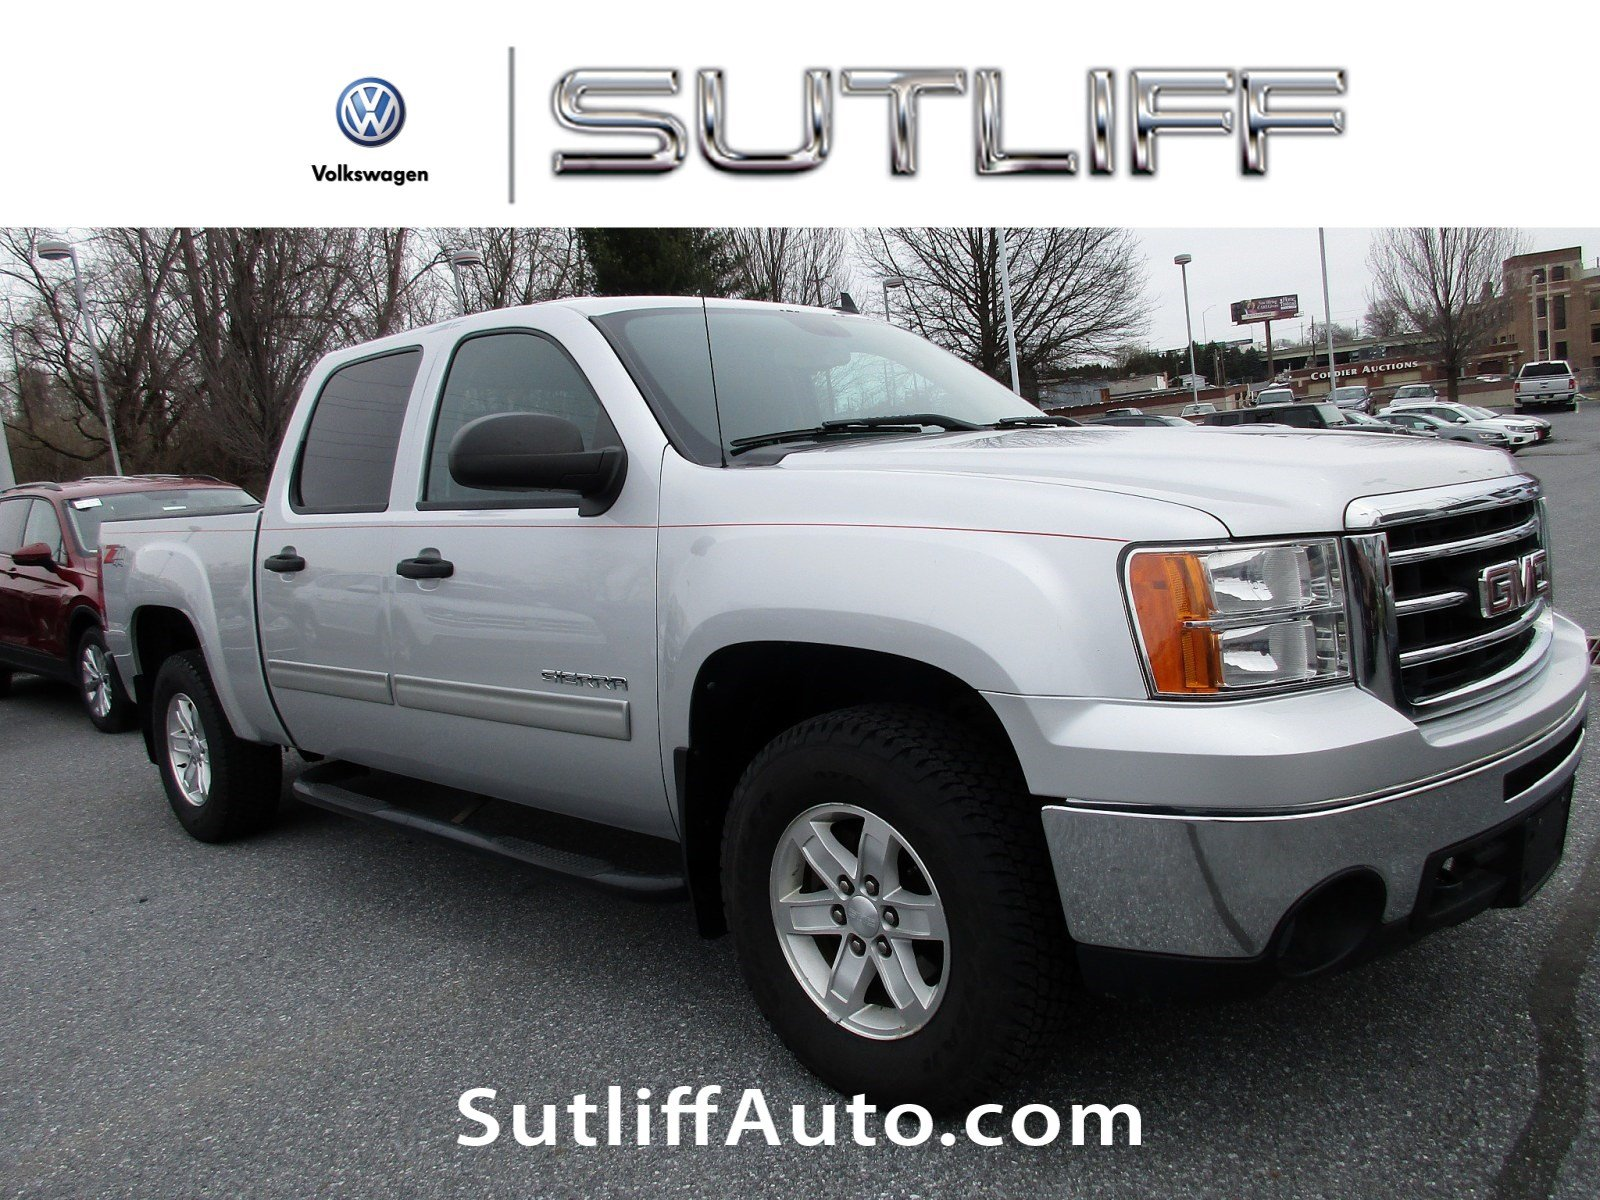 Pre Owned 2012 GMC Sierra 1500 SLE Crew Cab Pickup in Harrisburg